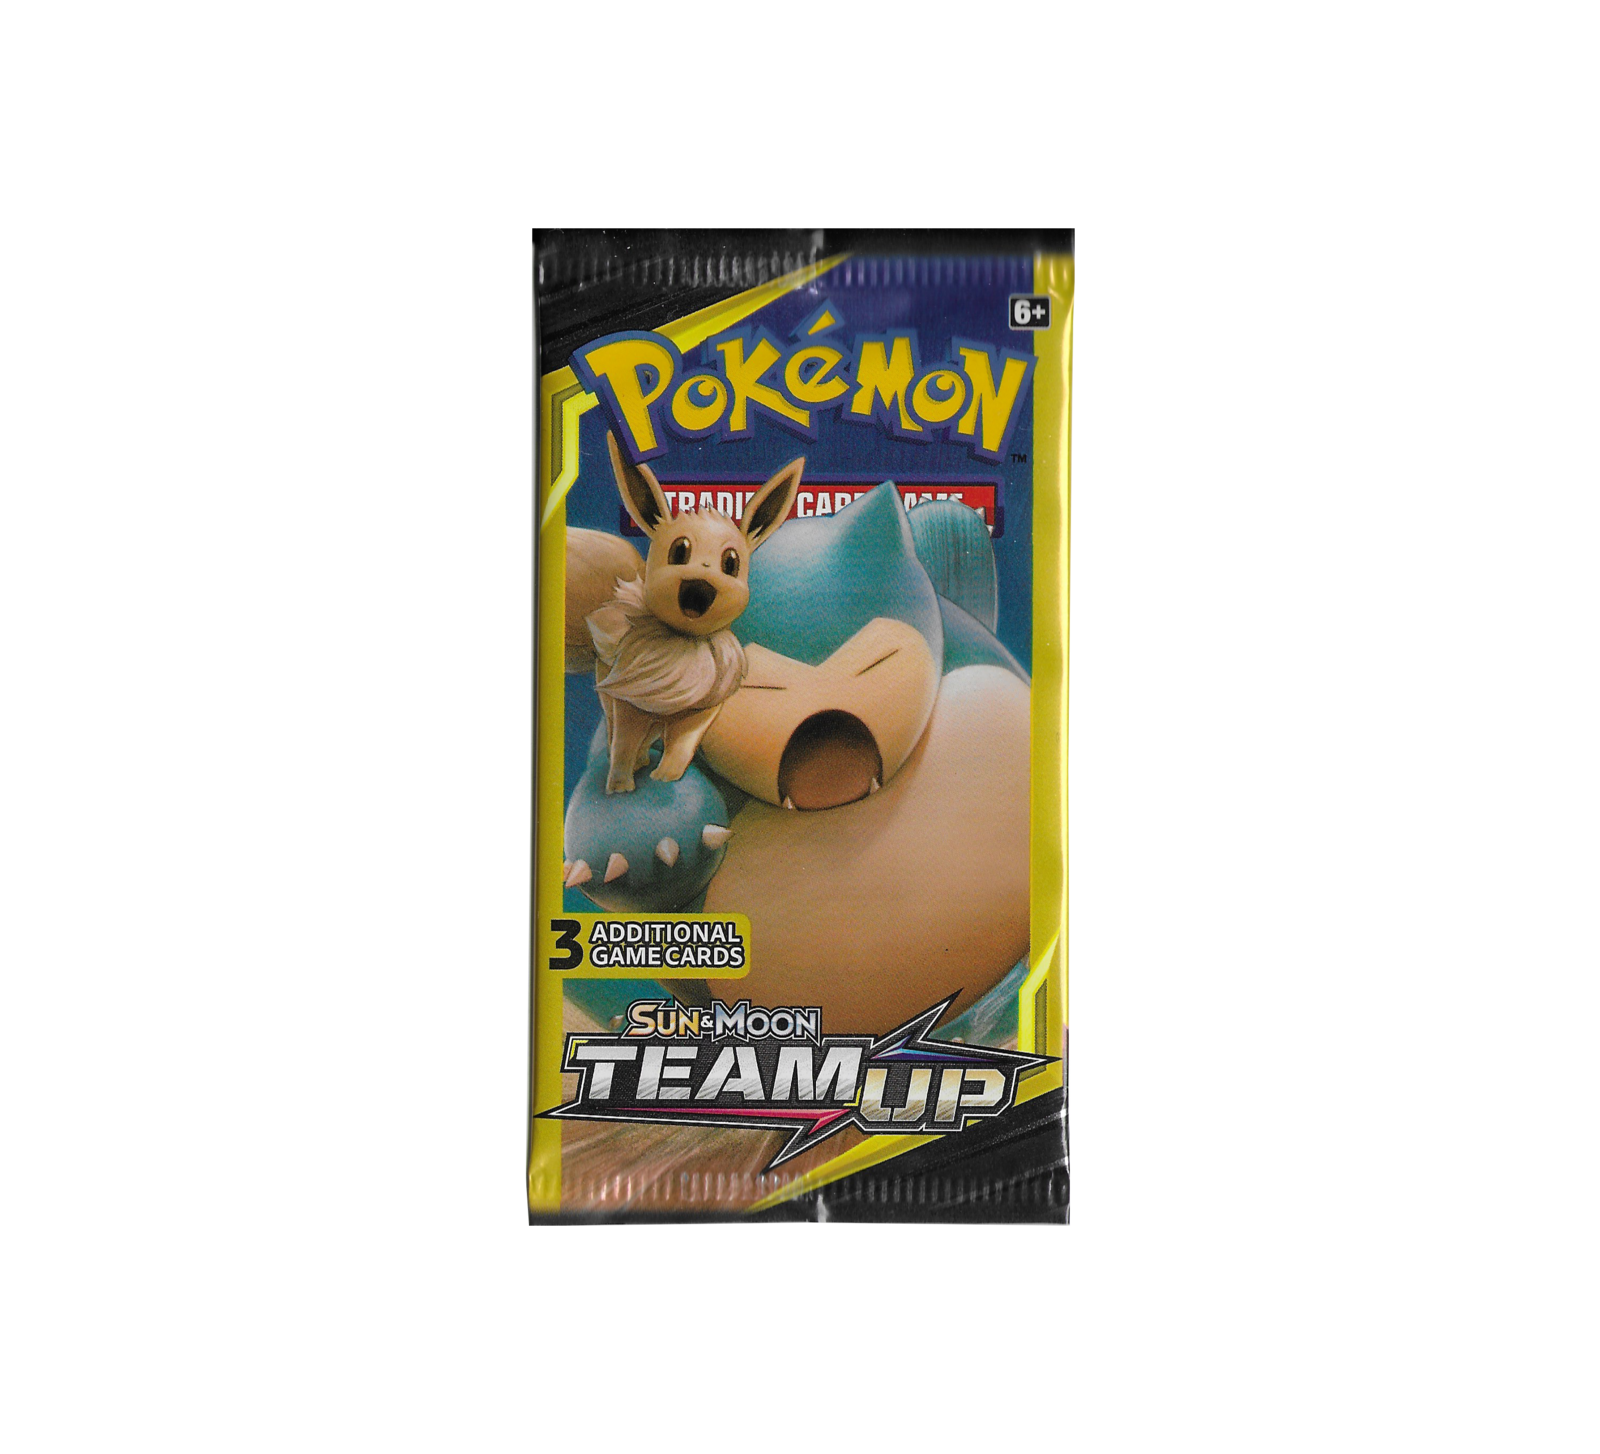 Pokemon sun   moon team up eve   snorlax booster cover